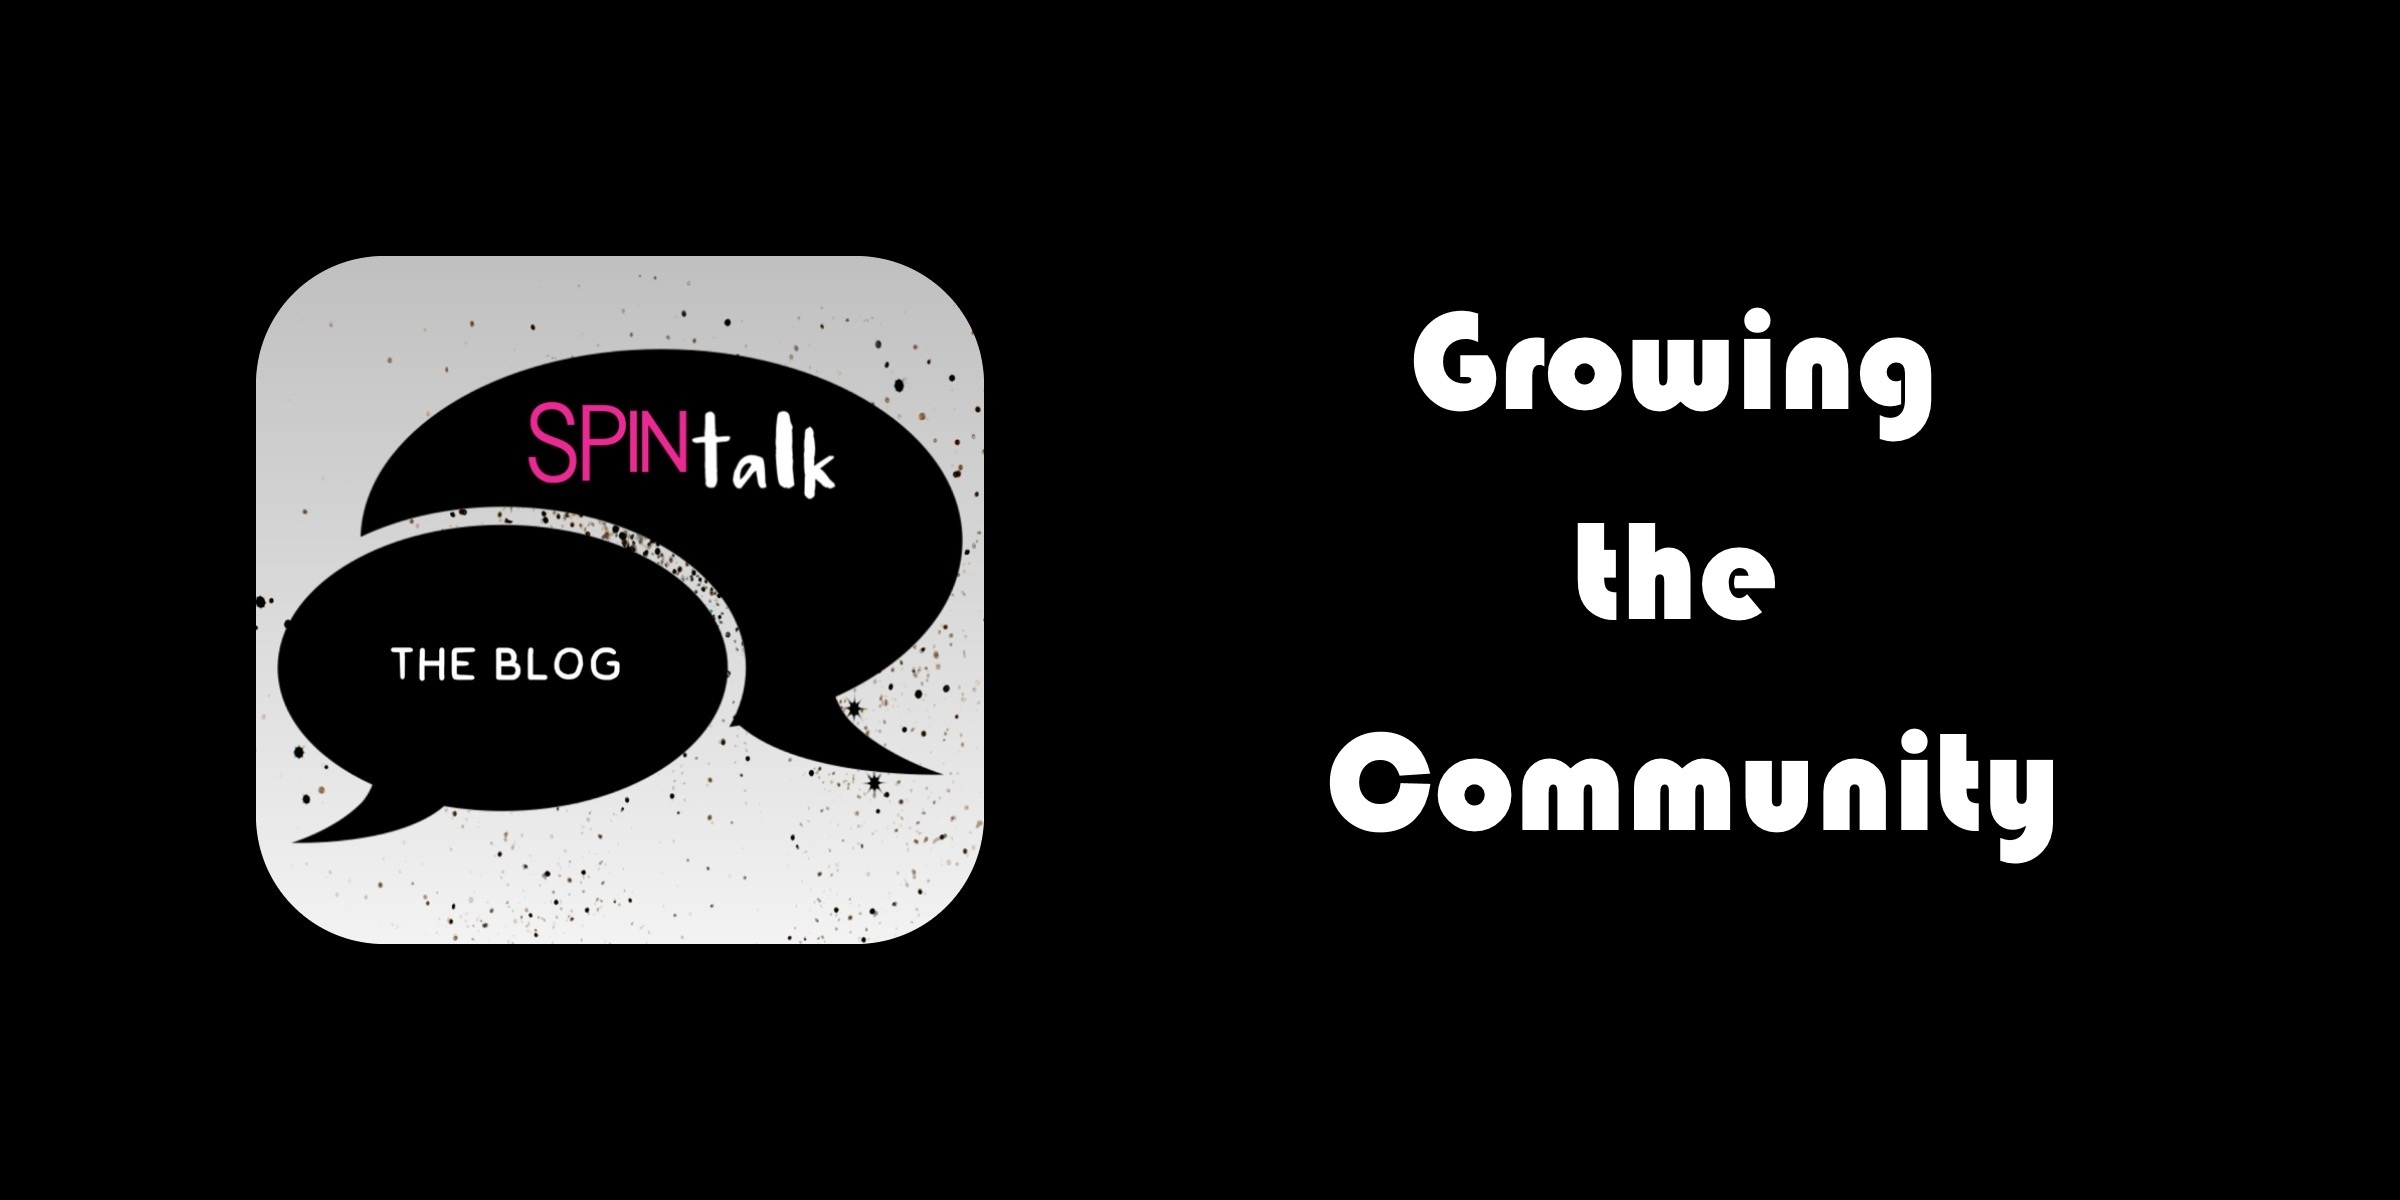 Spintalk Growing The Community